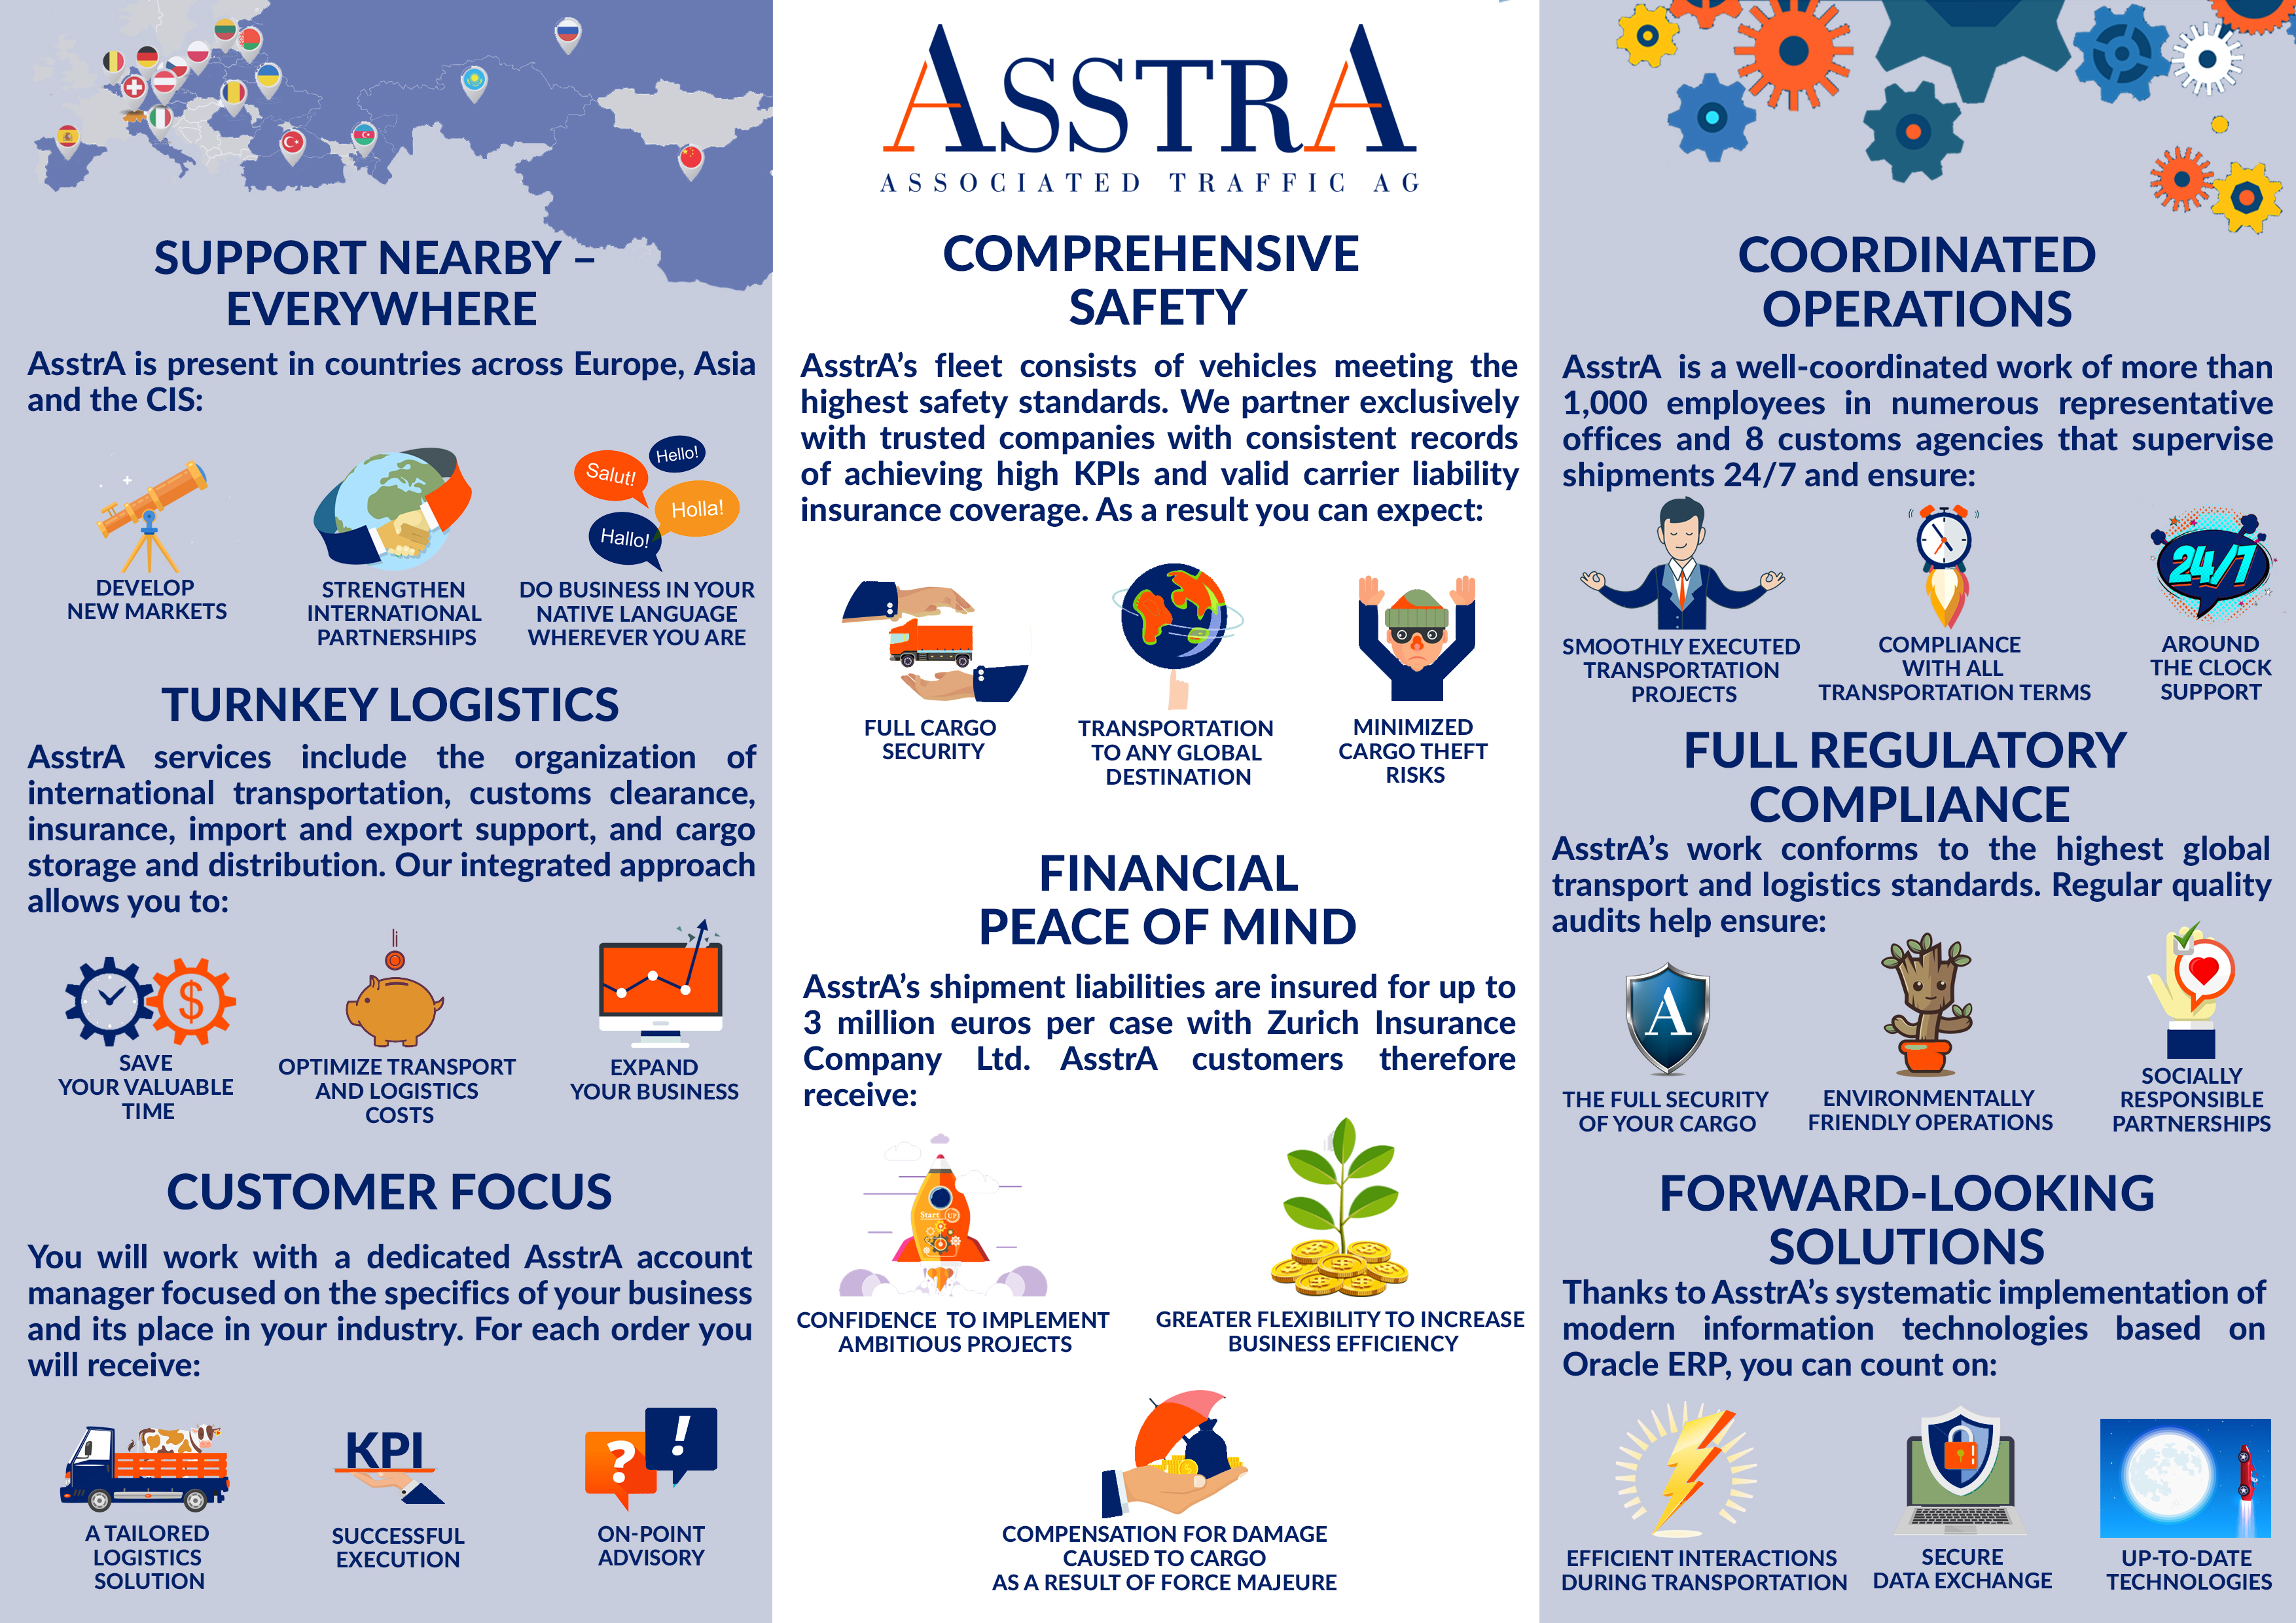 AsstrA - advantages